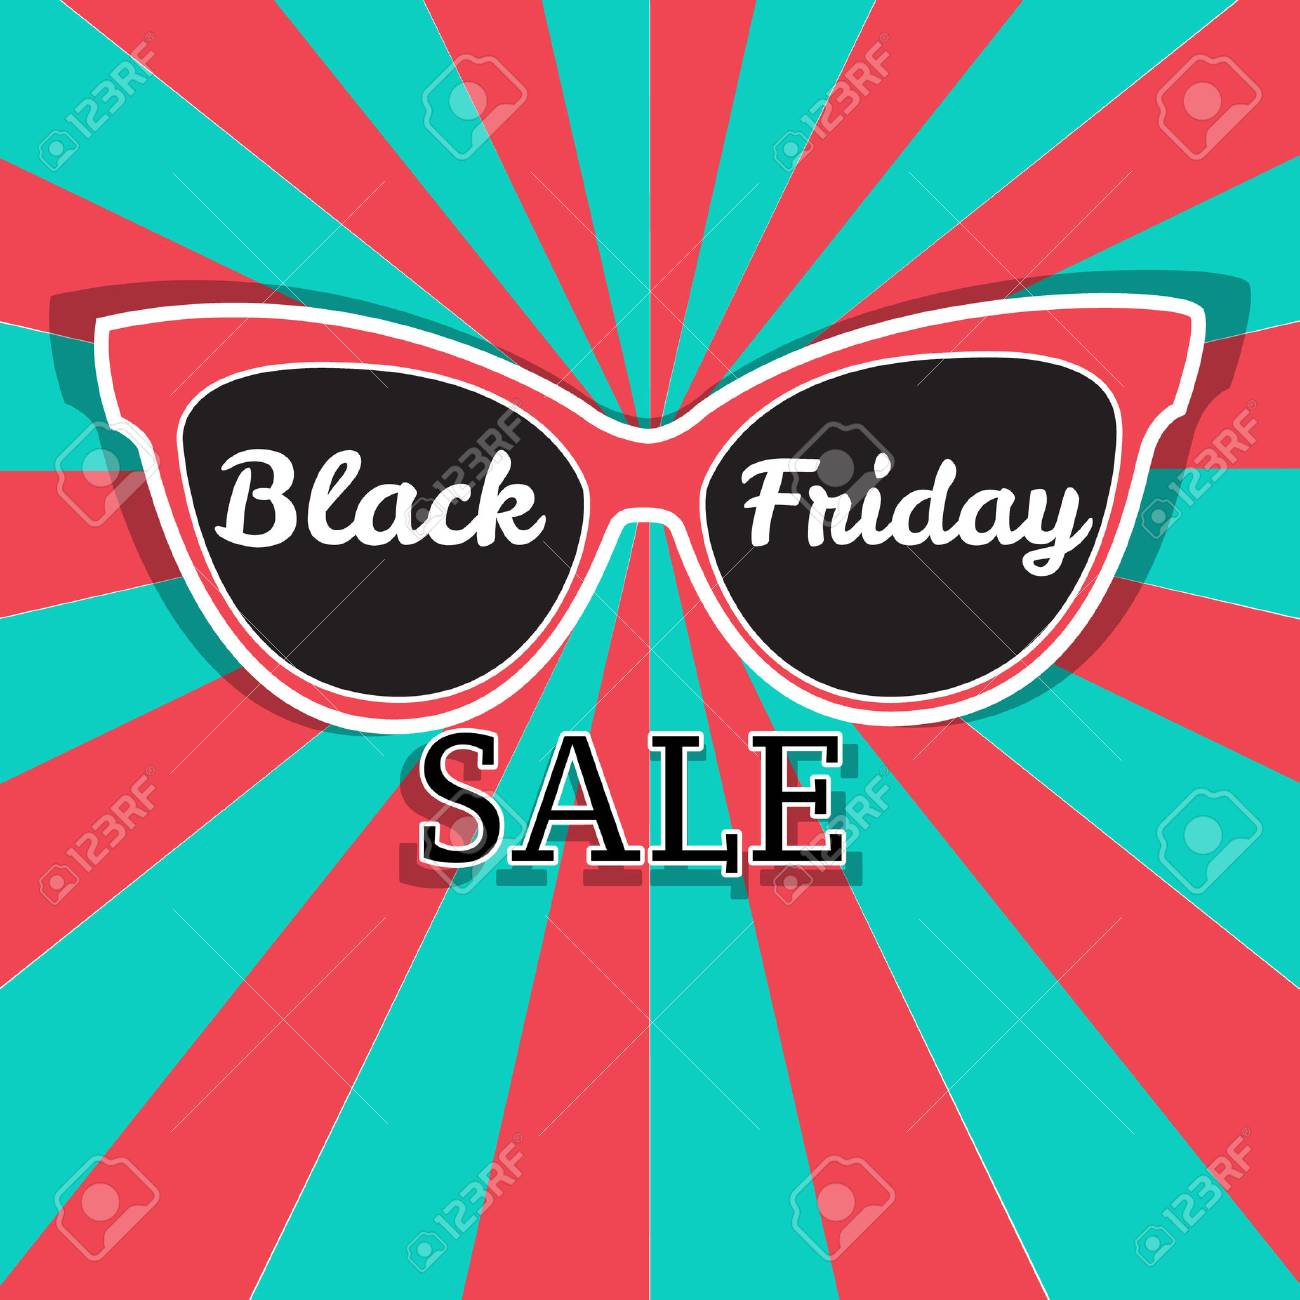 Sunglasses Black Friday Sale Vector Sale Poster Advertising Royalty Free Cliparts Vectors And Stock Illustration Image 45302531